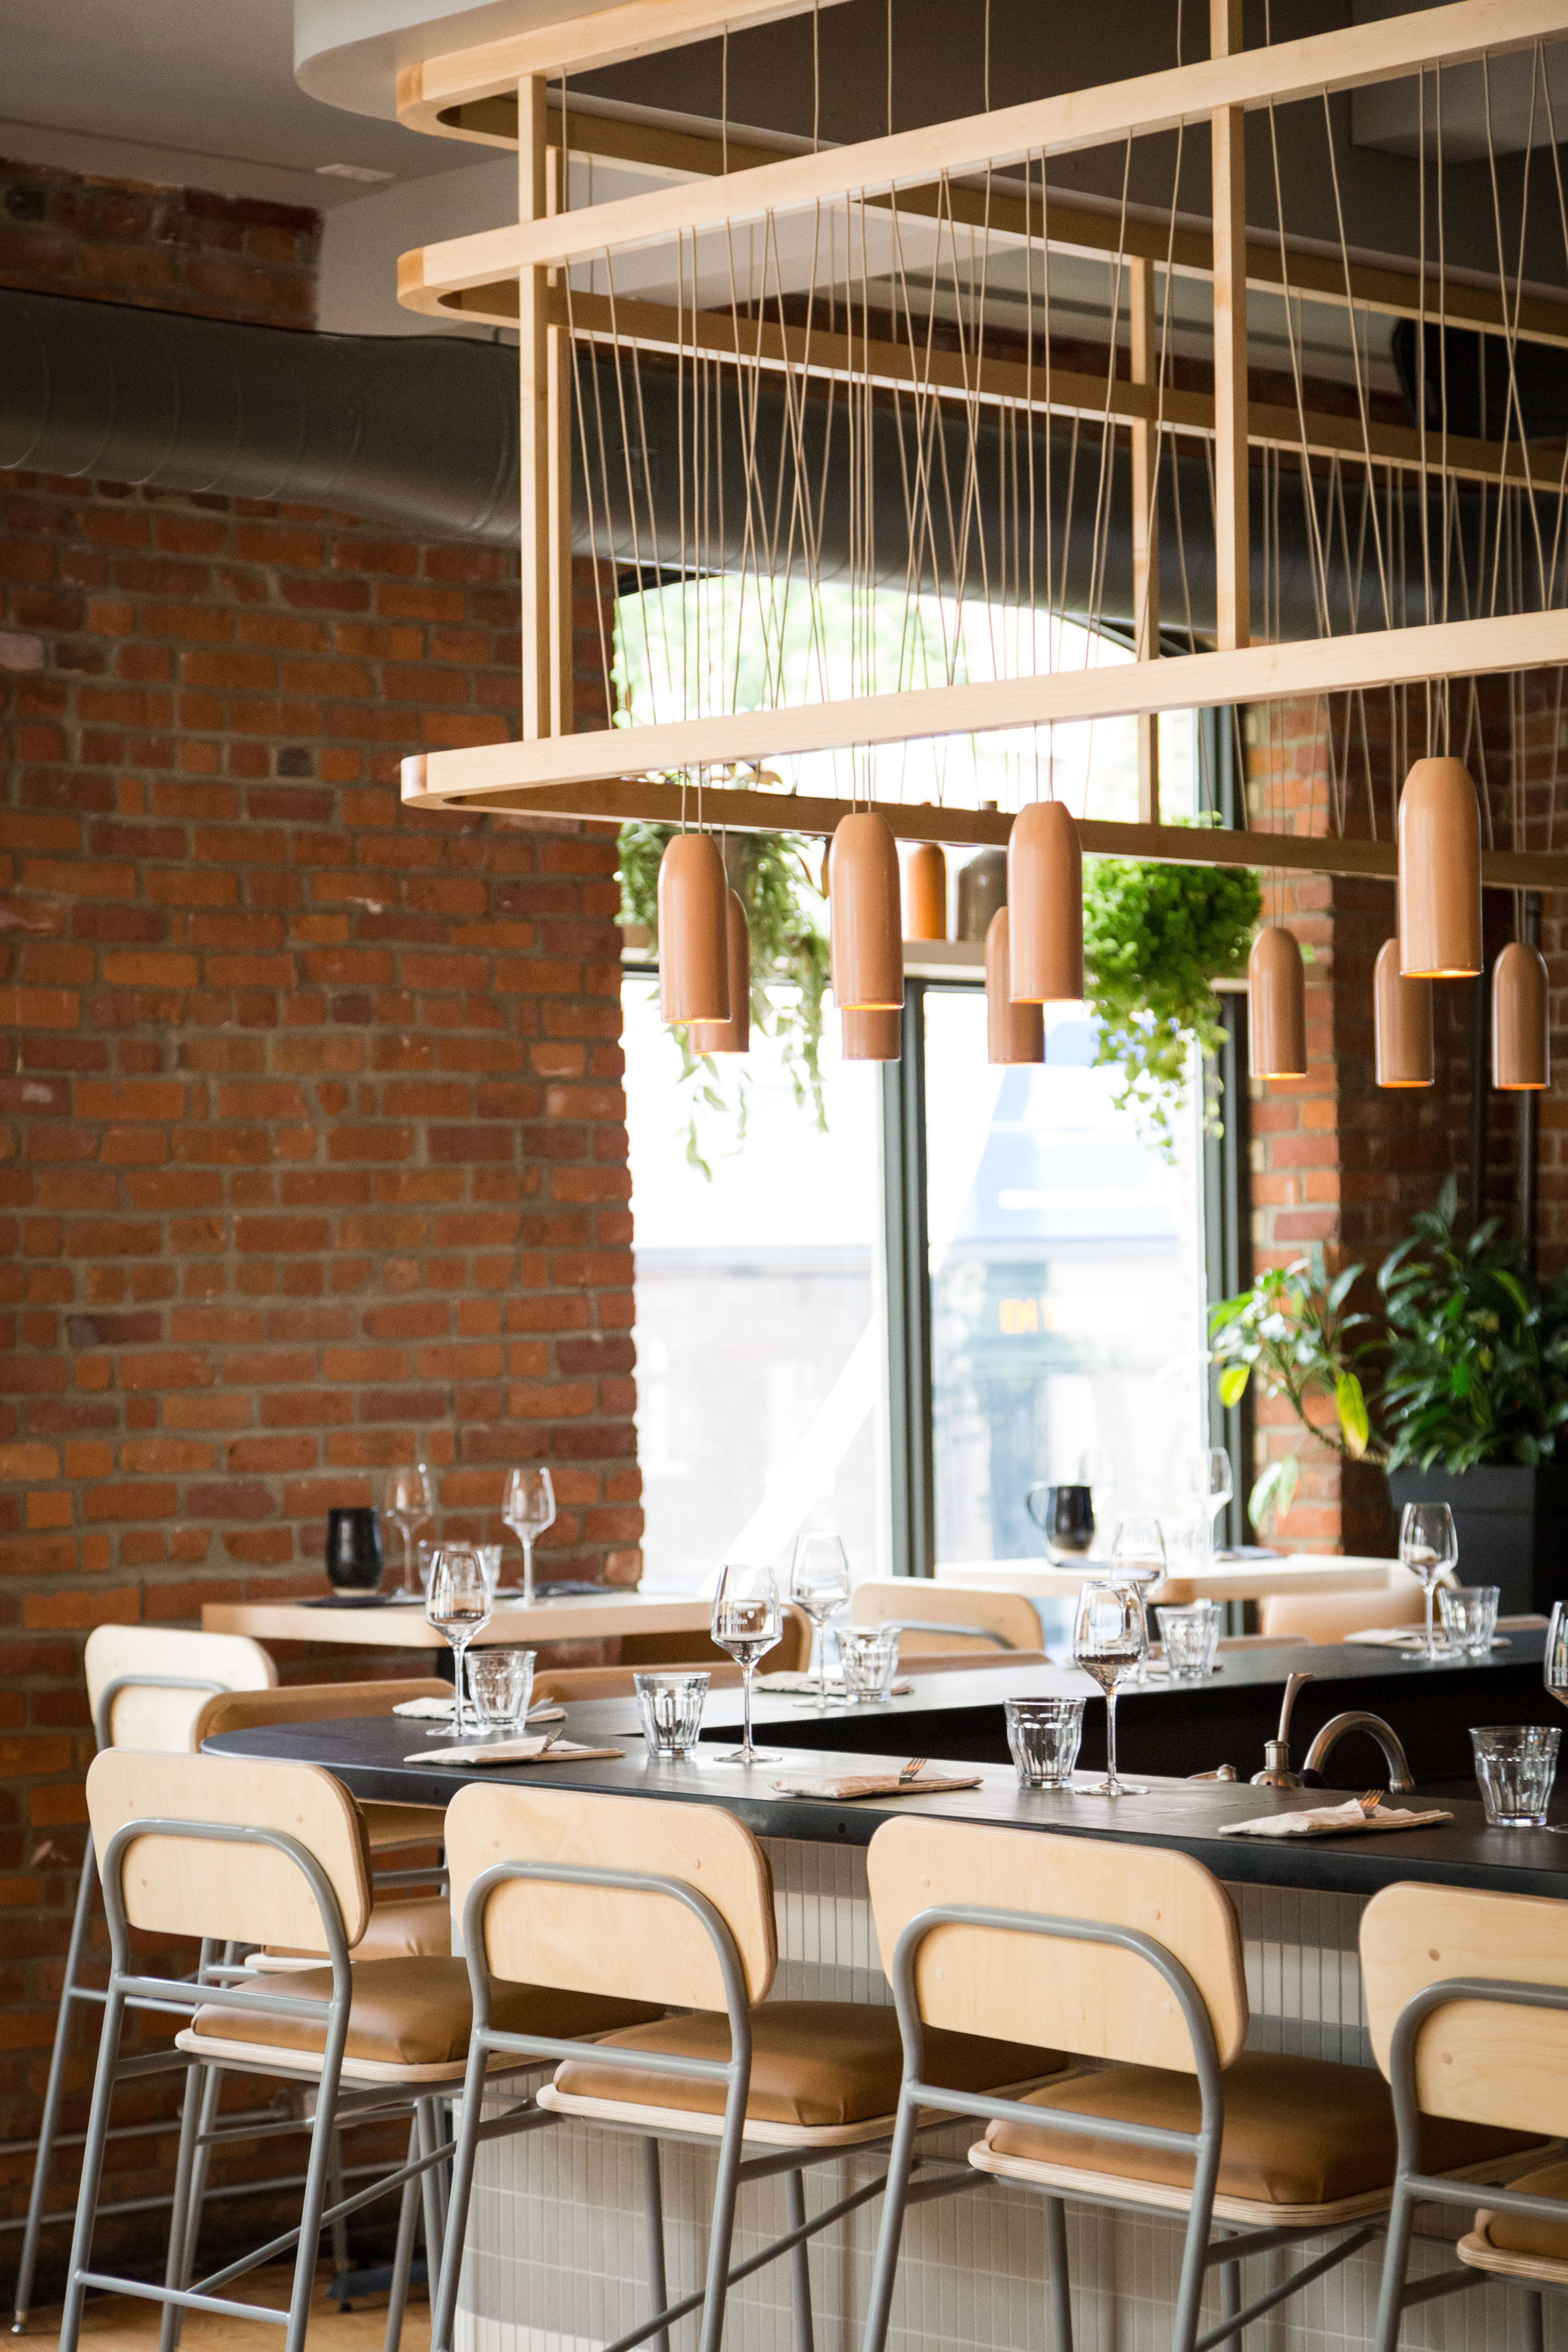 Atelier filz designs bespoke lighting and chairs for